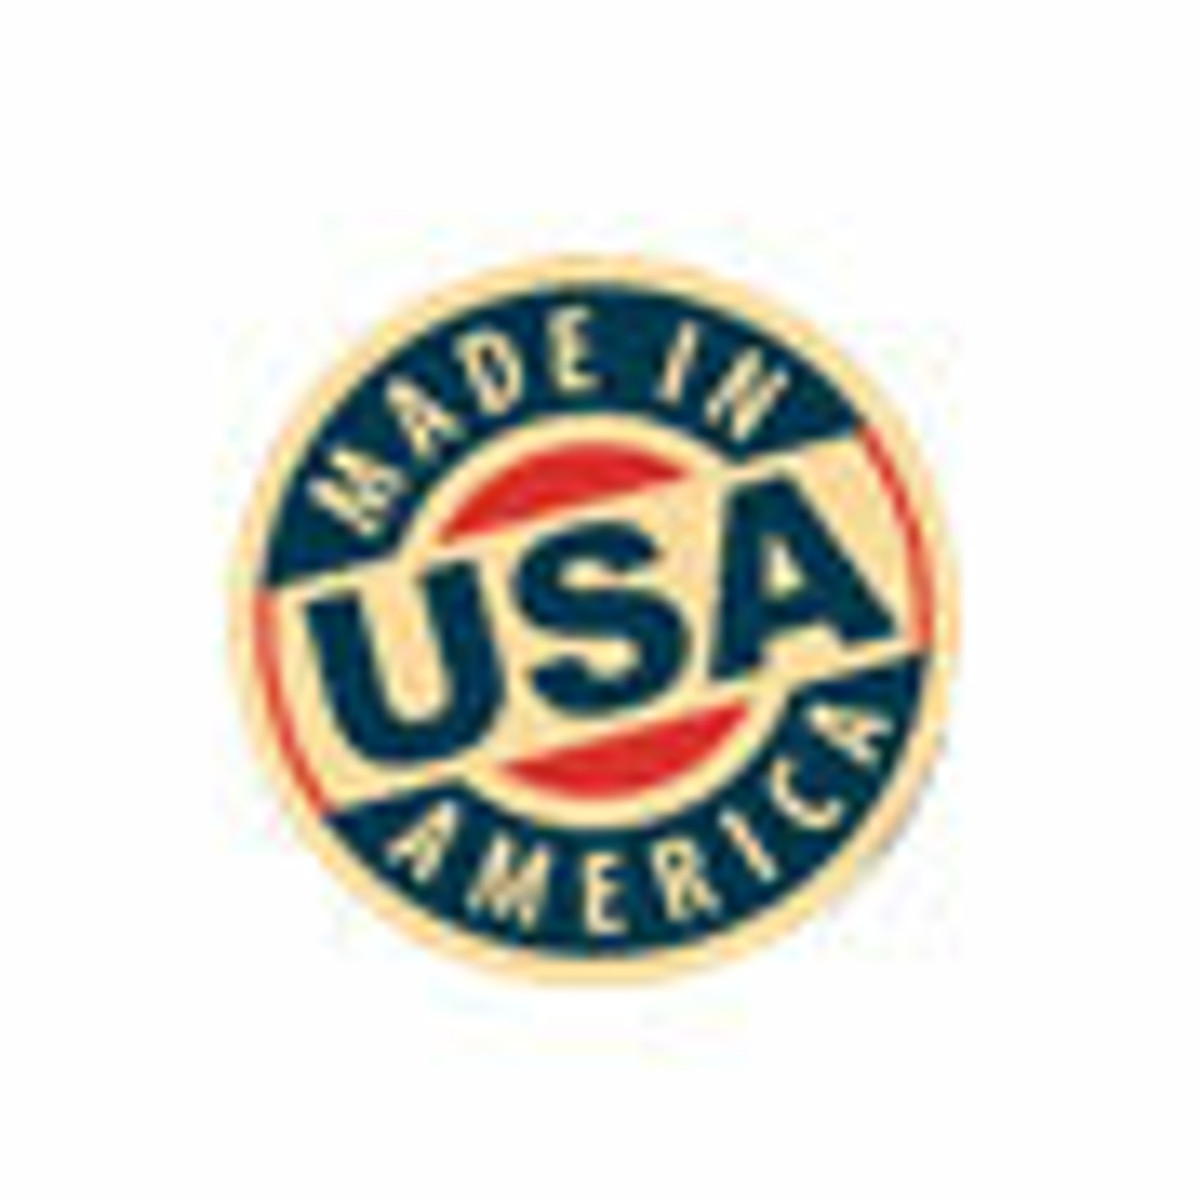 U.S.A. Made Products